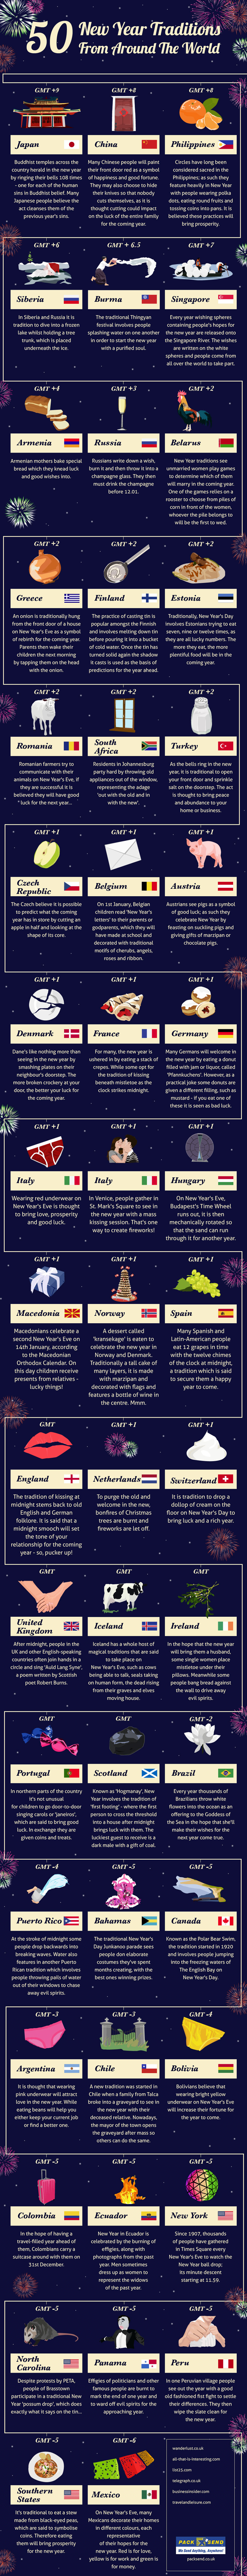 50 new year traditions from around the world